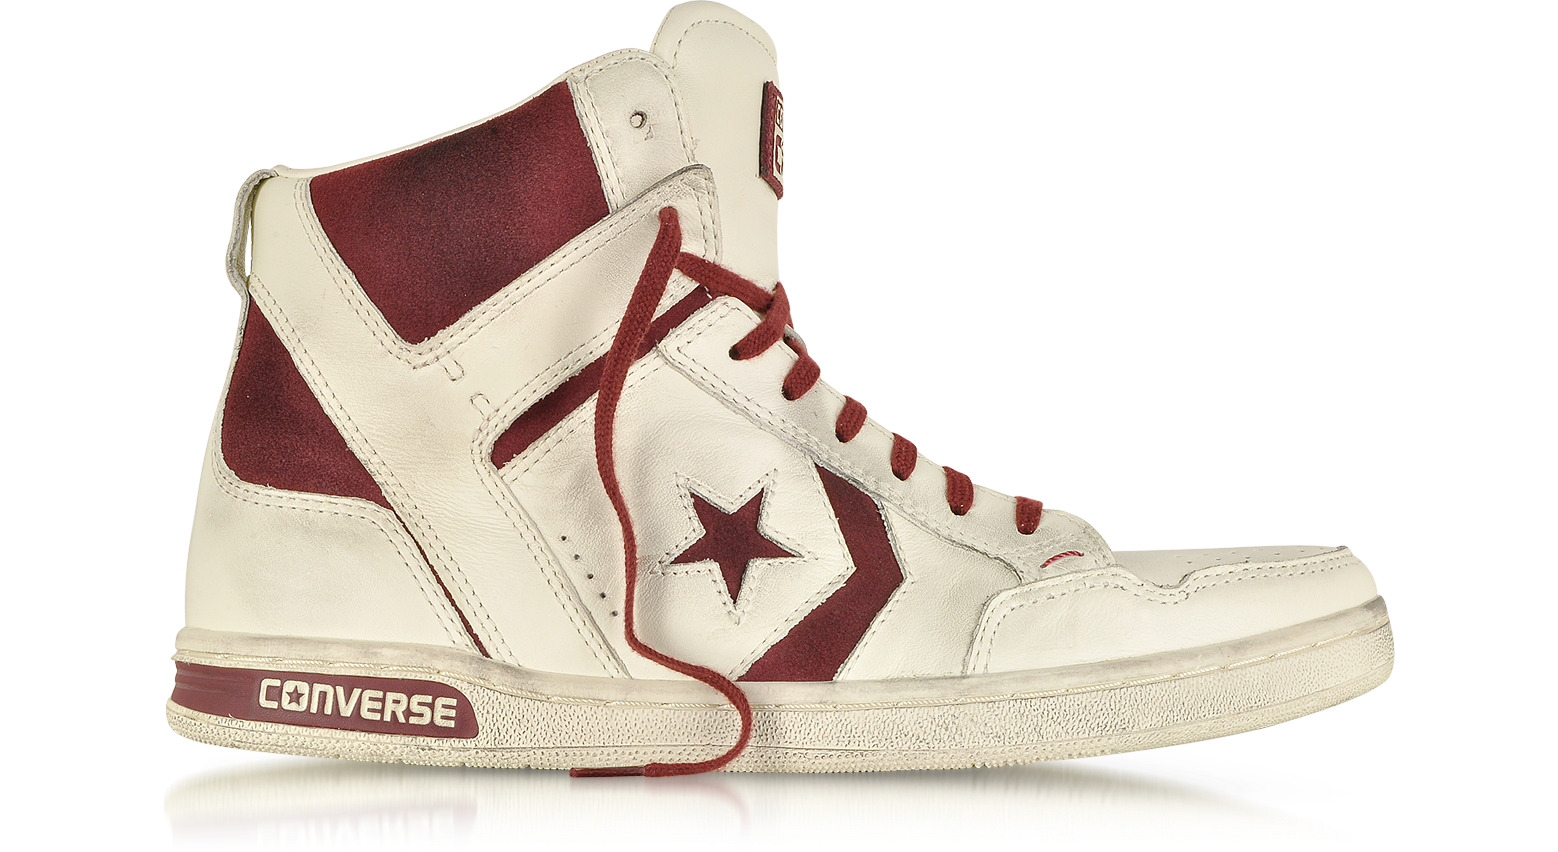 Converse Limited Edition JV Weapon HI White Leather and Burgundy